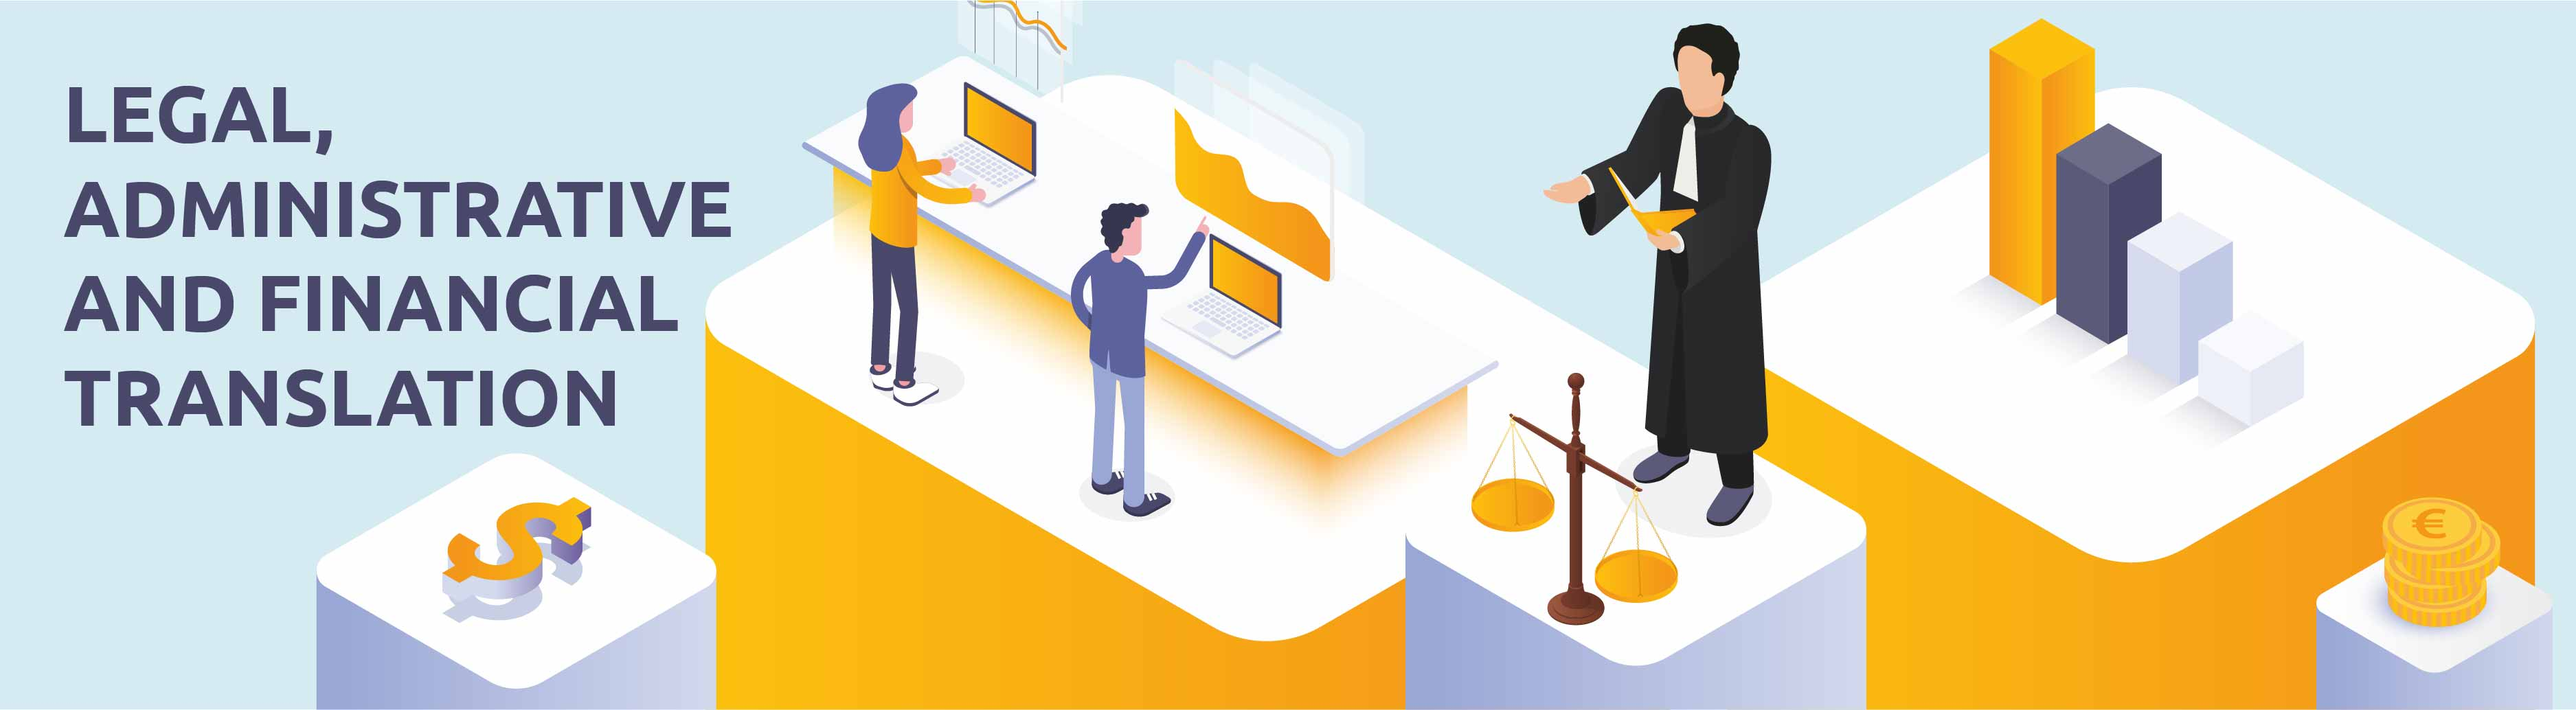 legal administrative and financial translation